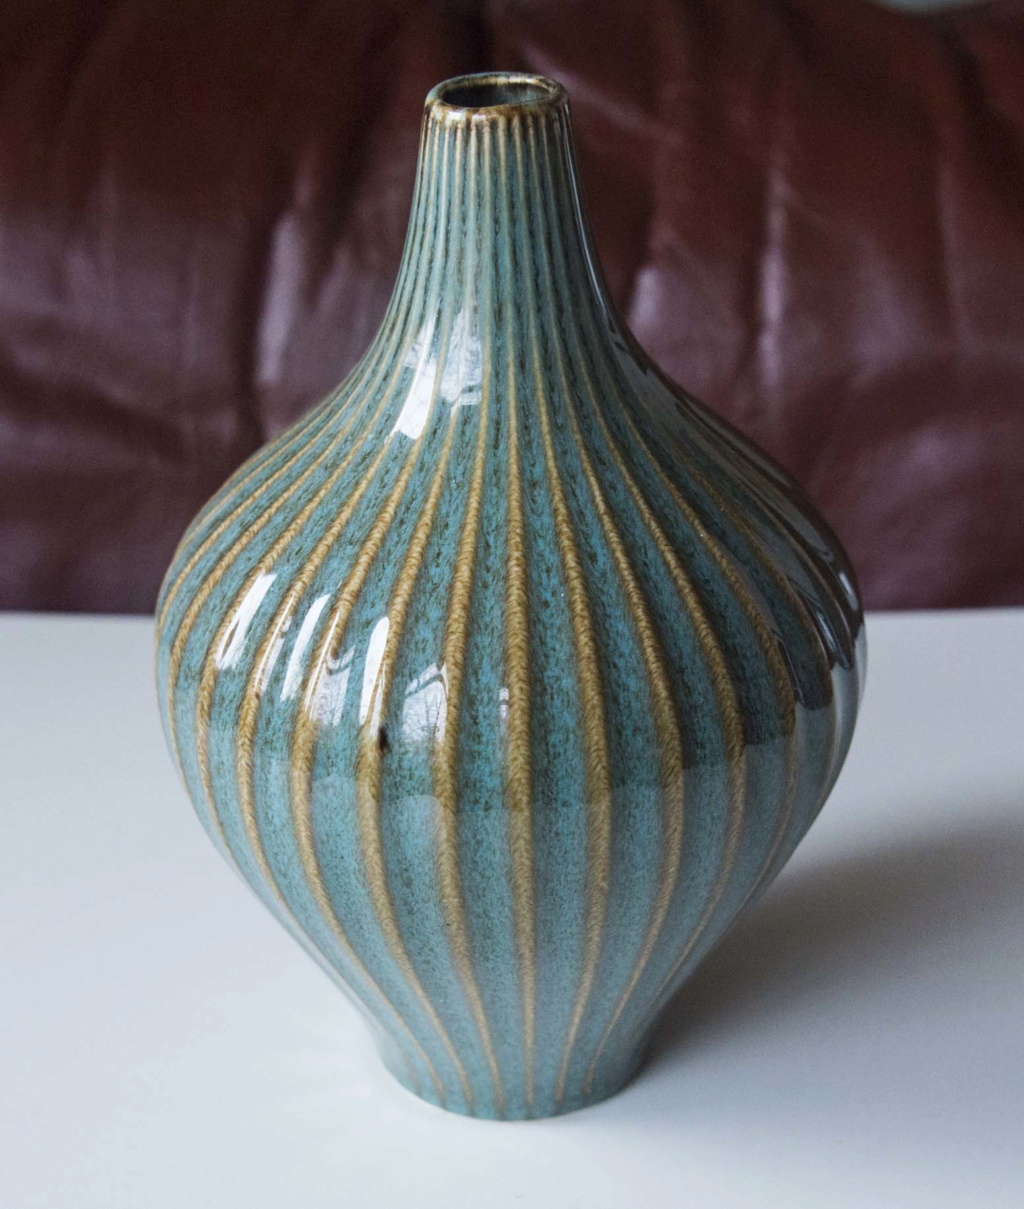 Nice green/striped vase, but few clues Green_19